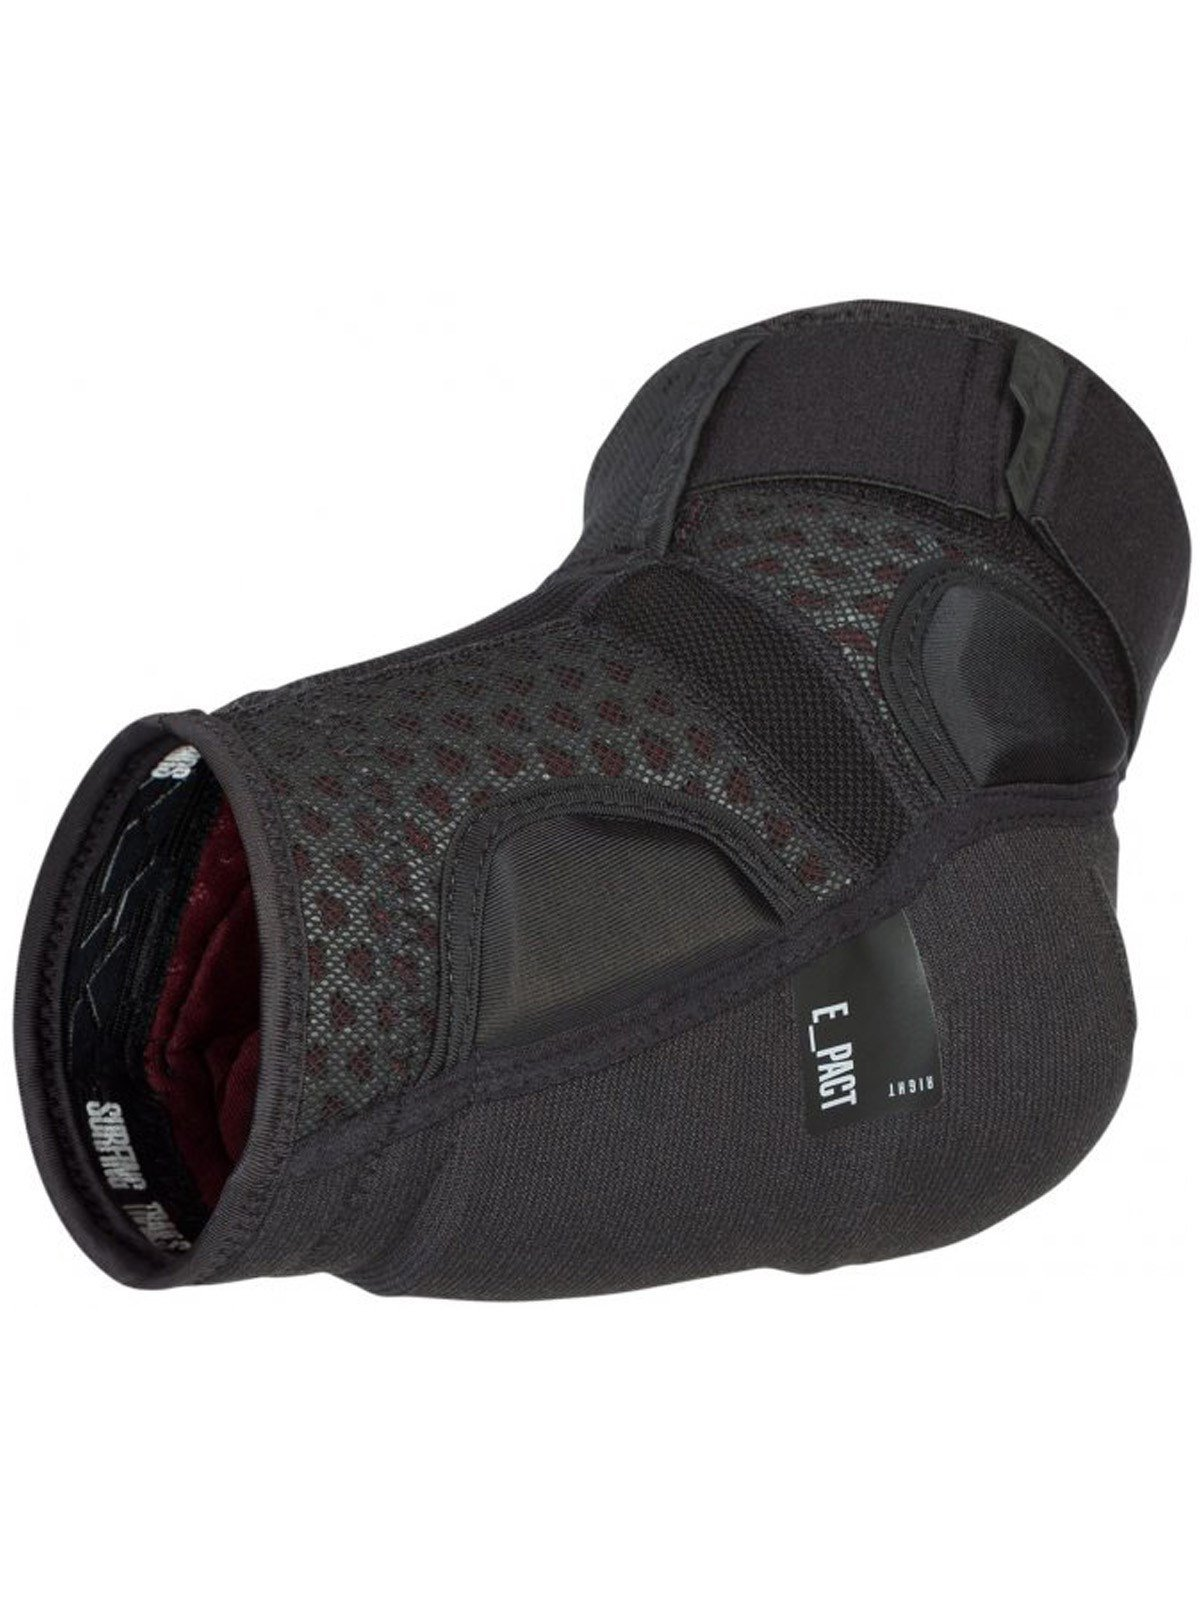 ION E-Pact Elbow Pad Black, S by ION (Image #2)